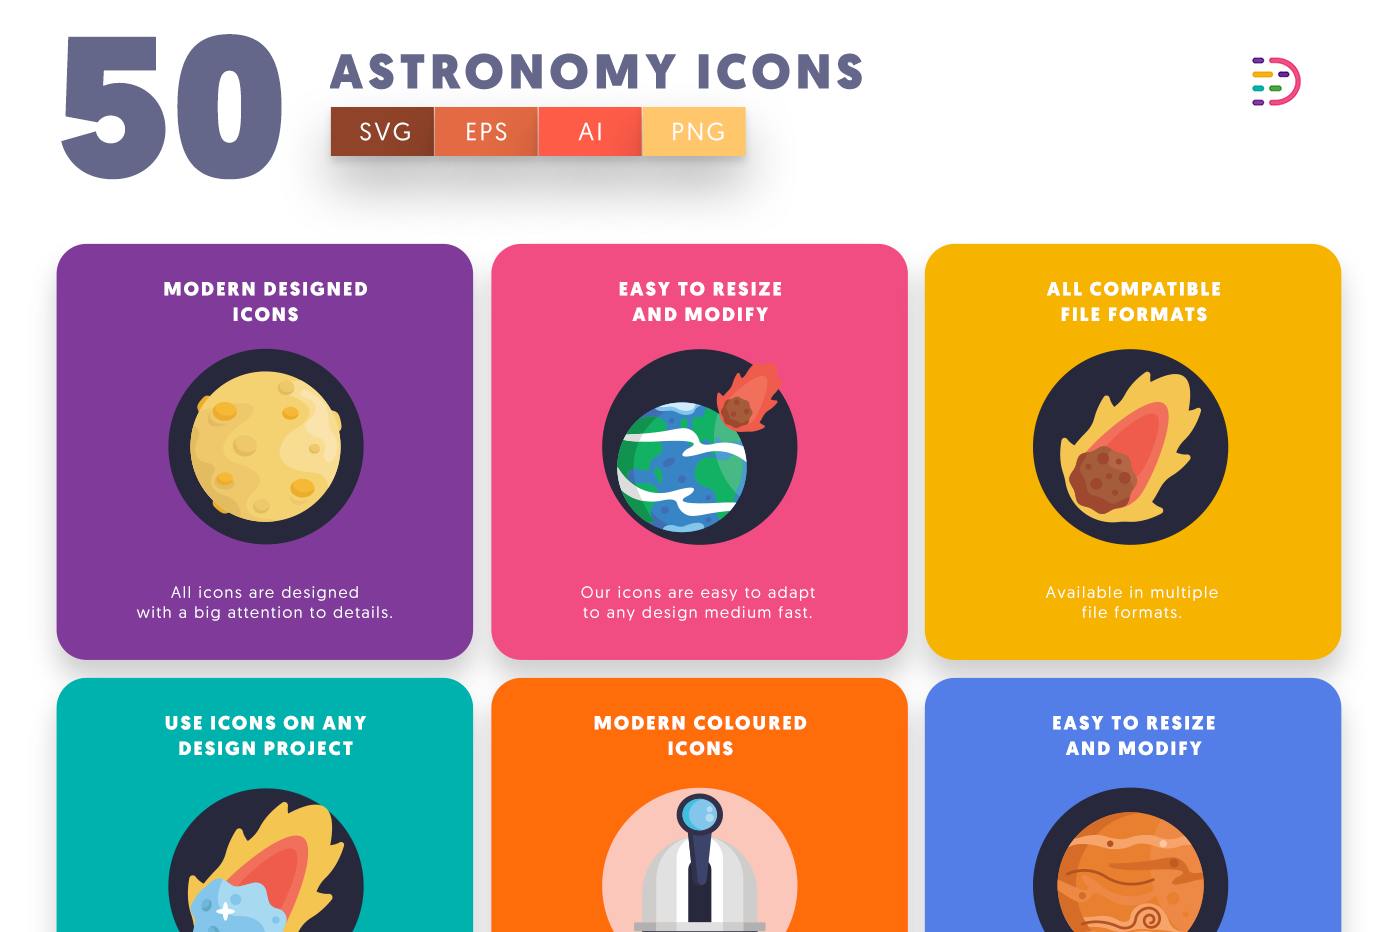 50 Astronomy Icons with colored backgrounds